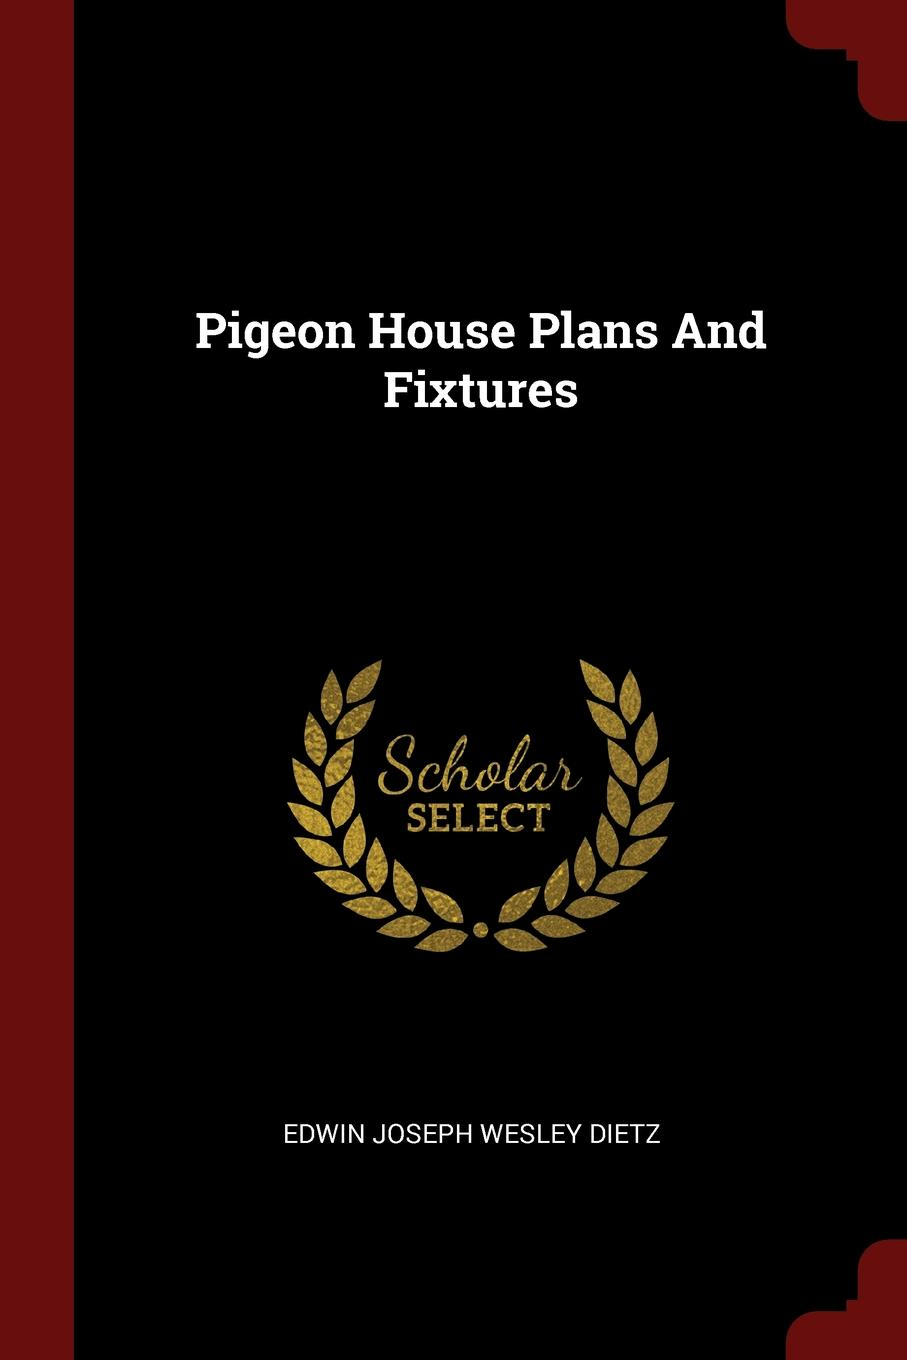 Pigeon House Plans And Fixtures